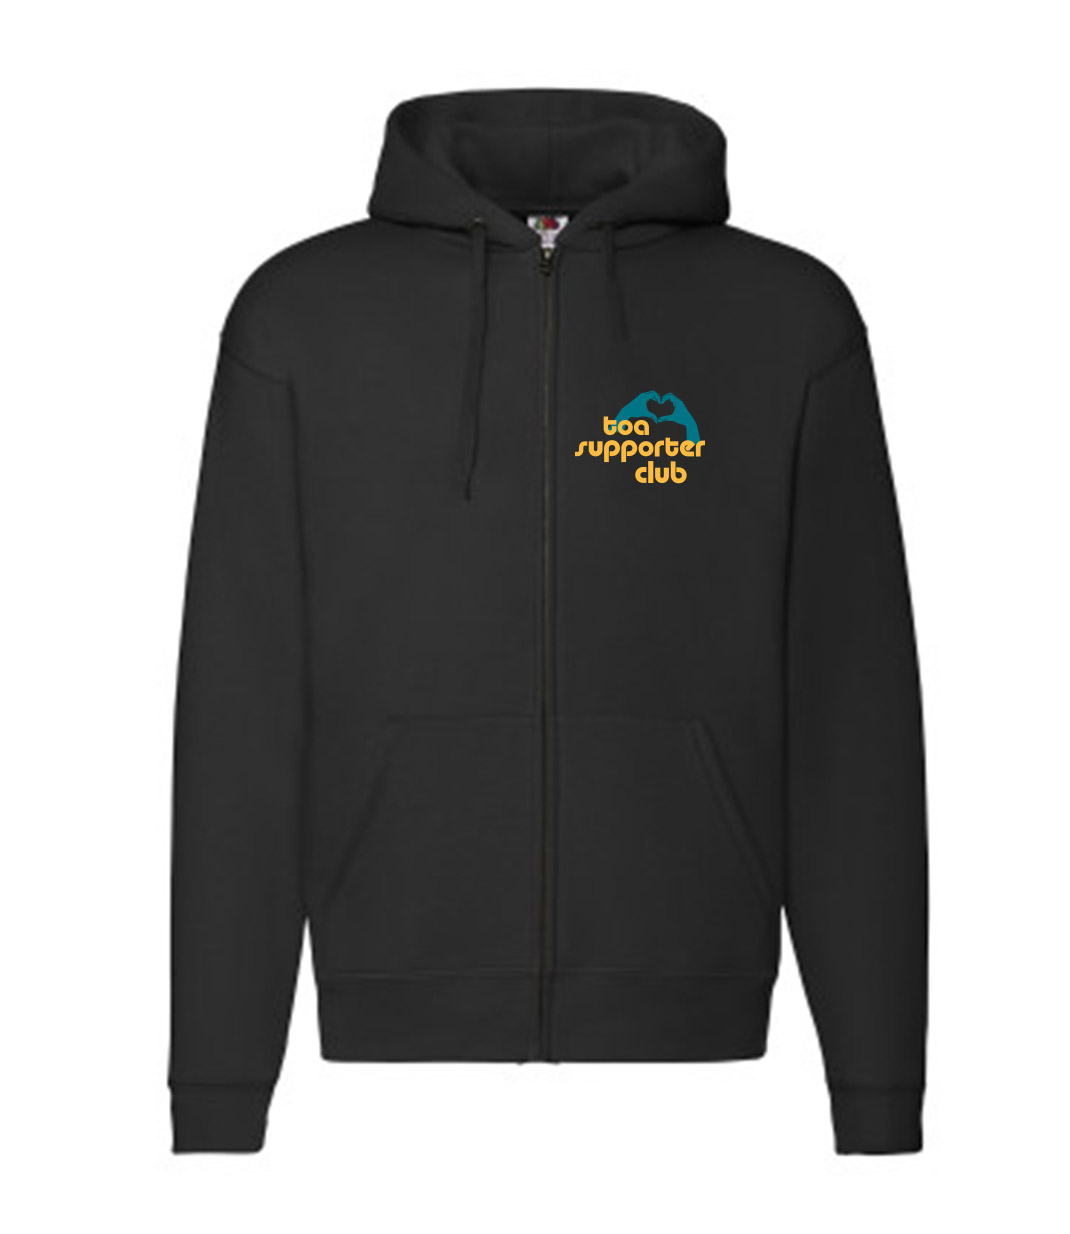 Toa Supporter Club Unisex Zipper Hoodie